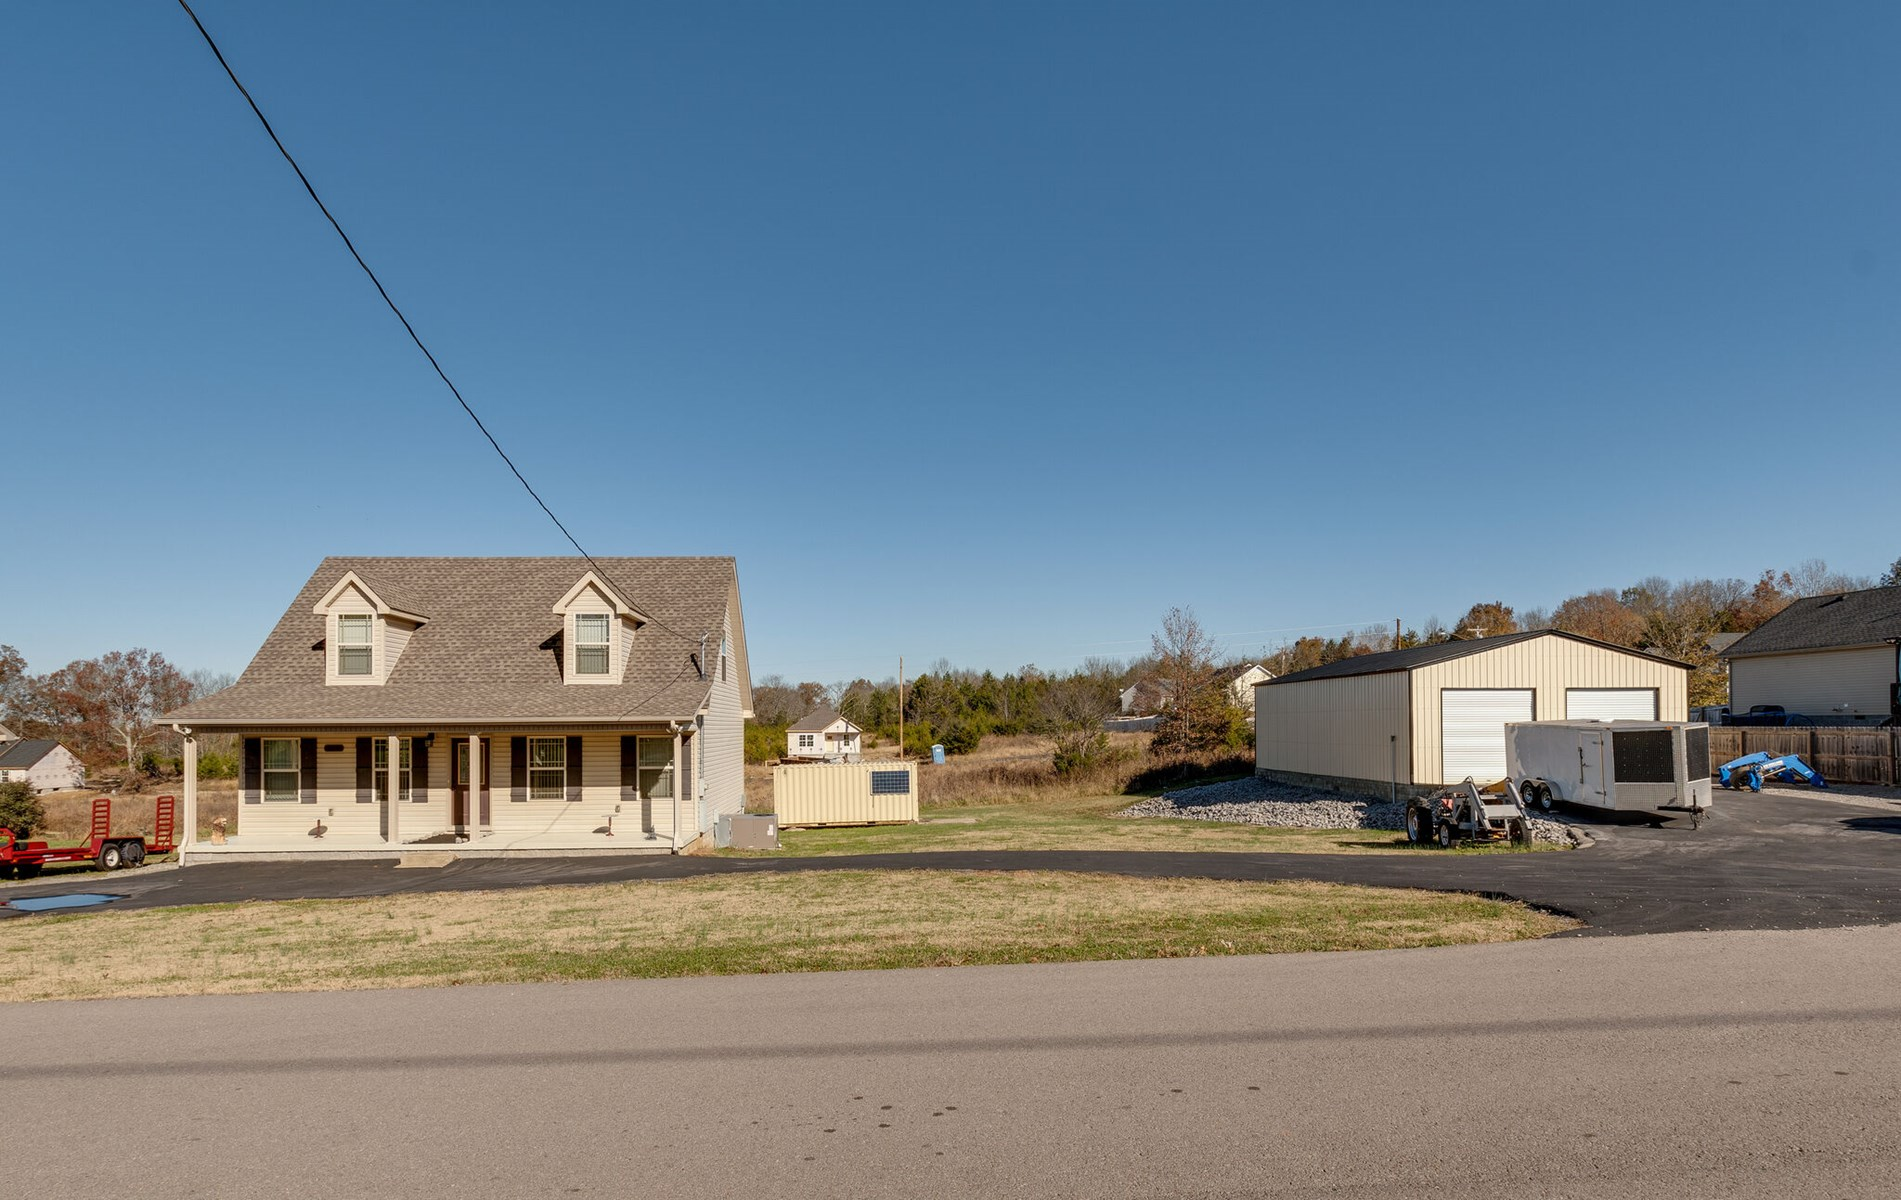 Home in Town for Sale in Lewisburg, Tennessee